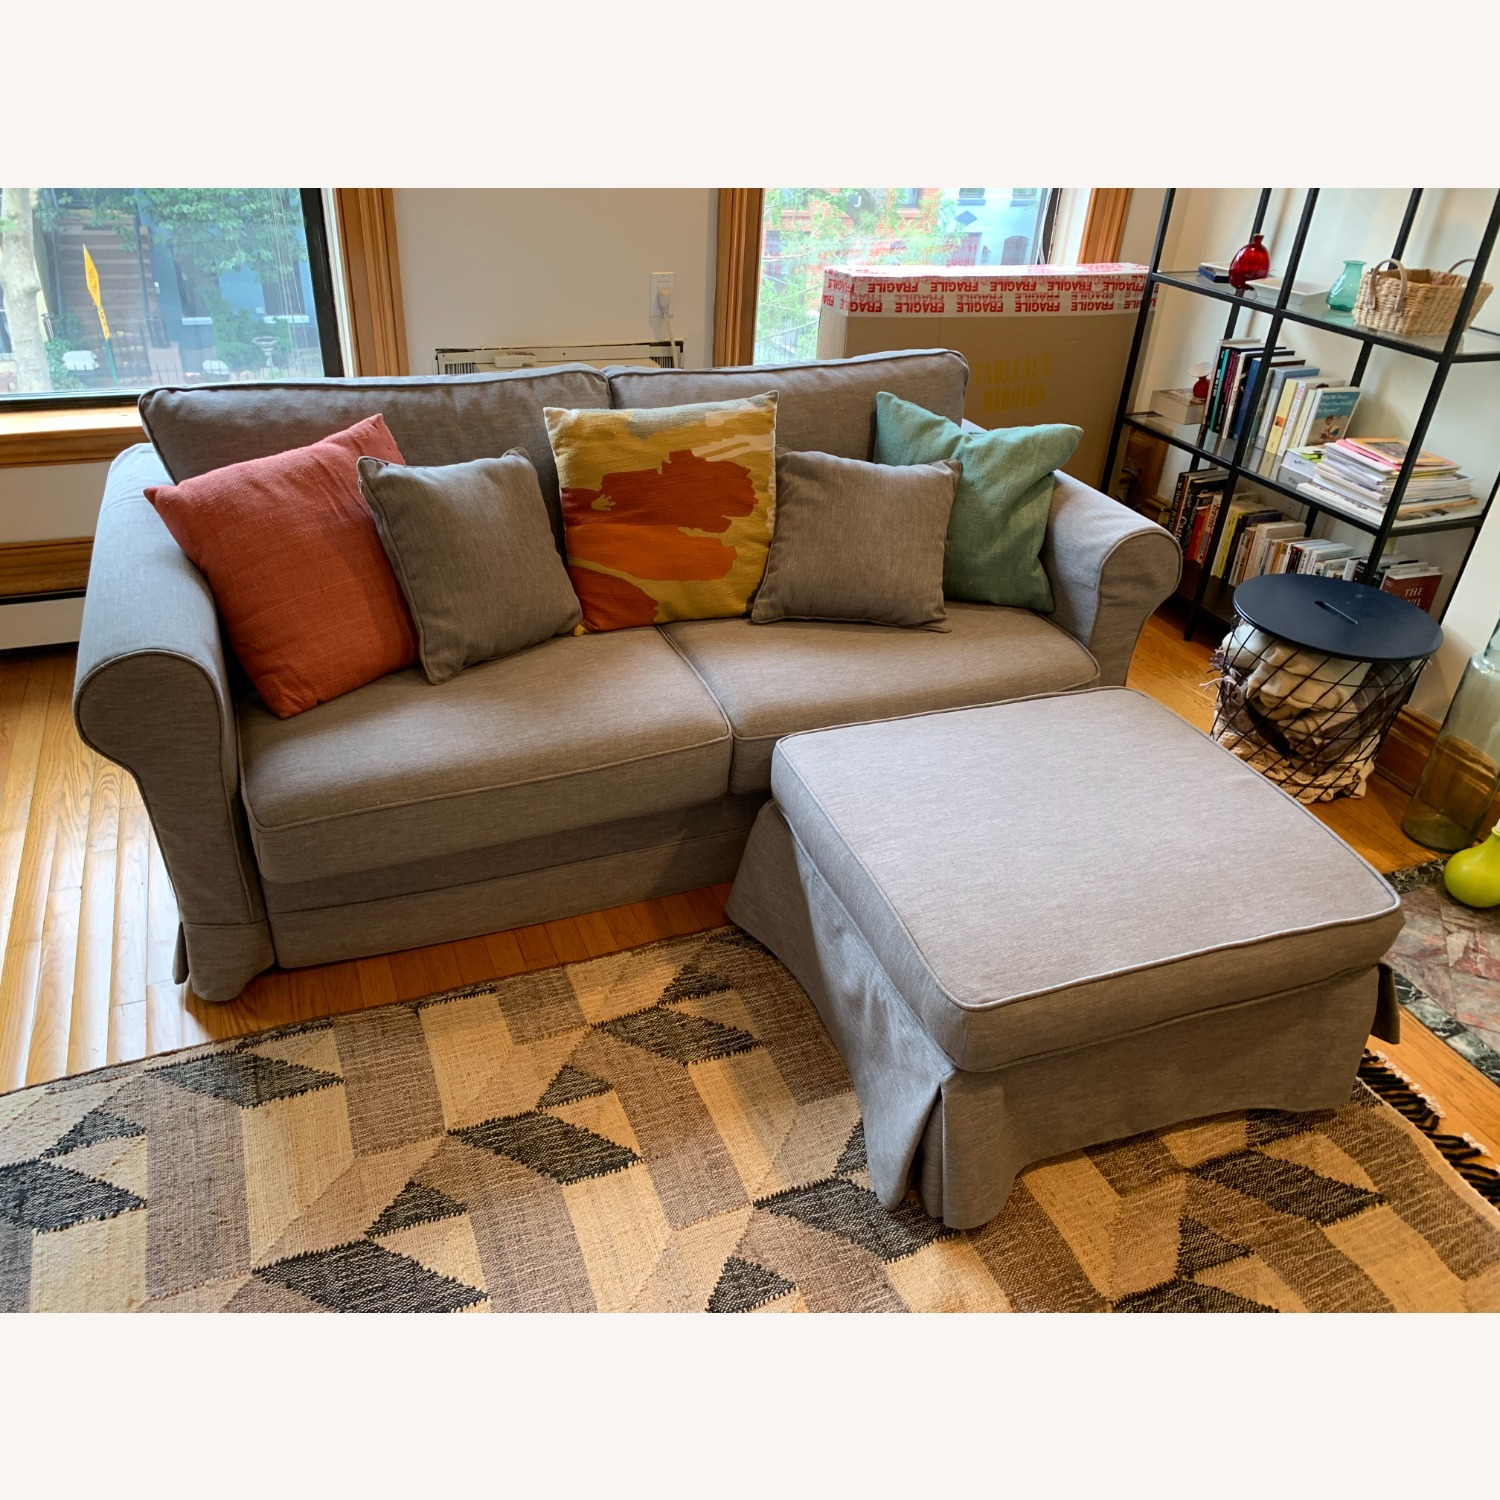 Grey Sofa Bed with Foot Rest - image-1